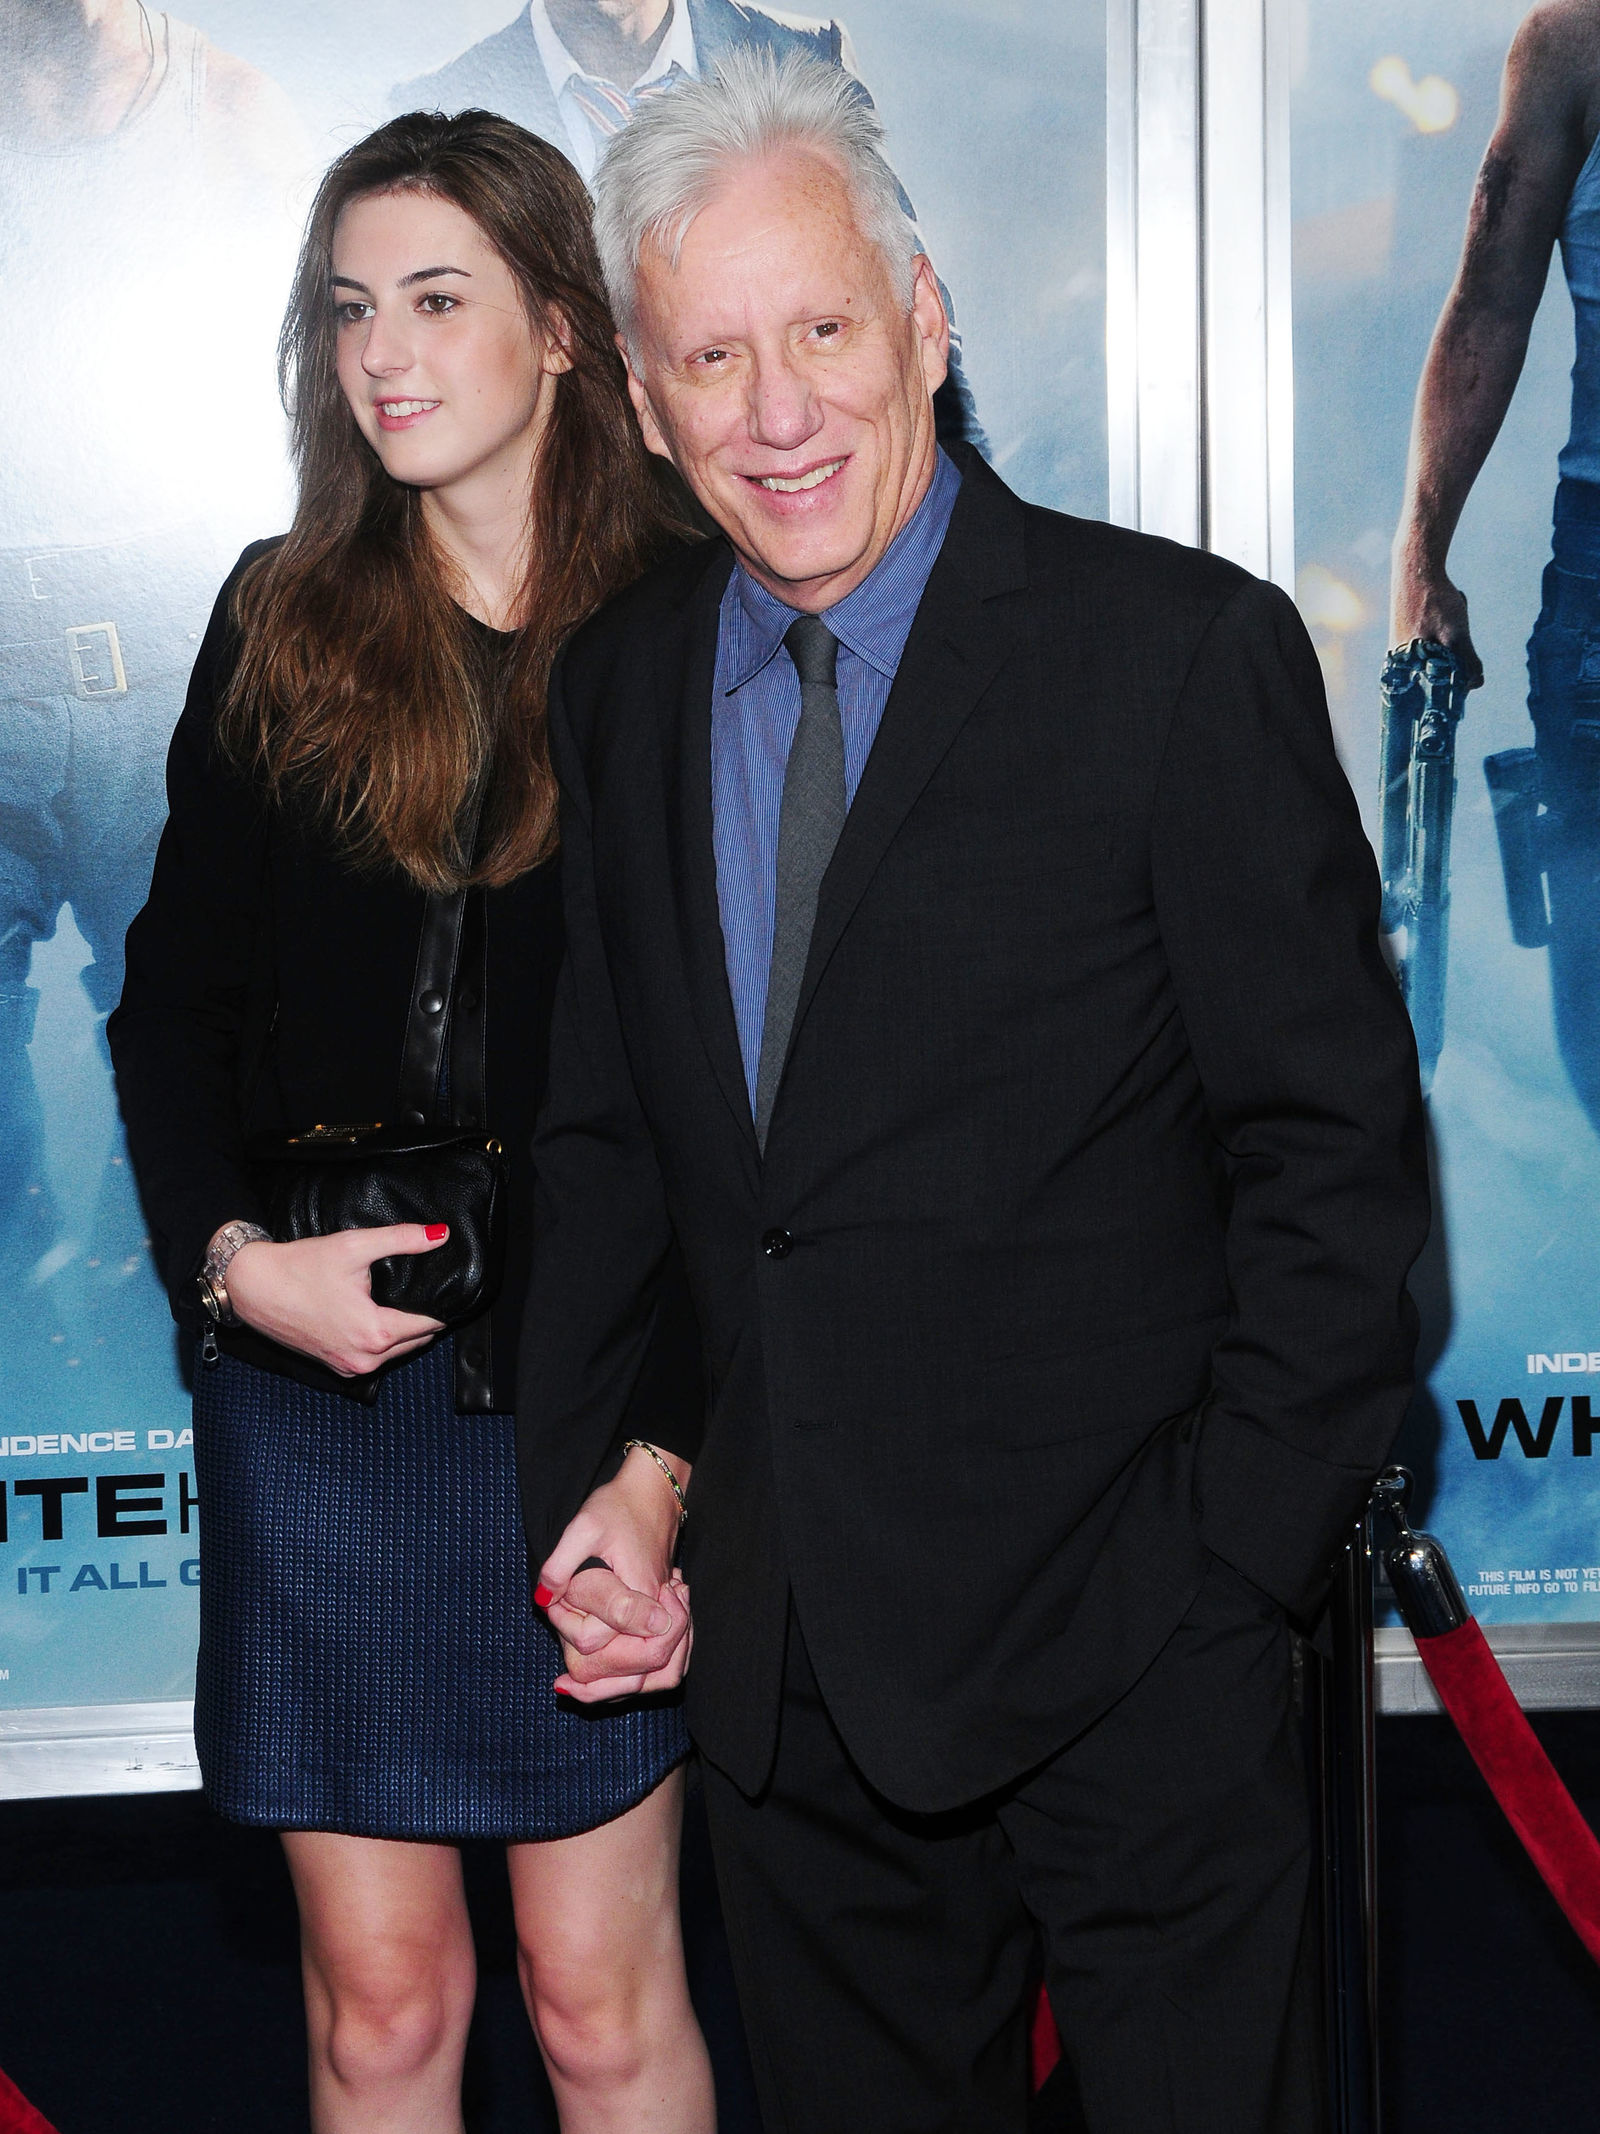 James Woods at the New York premiere of  'White House Down' at Ziegfeld Theater in New York, New York. (When: June 25, 2013. Credit: Dan Jackman/WENN.com)